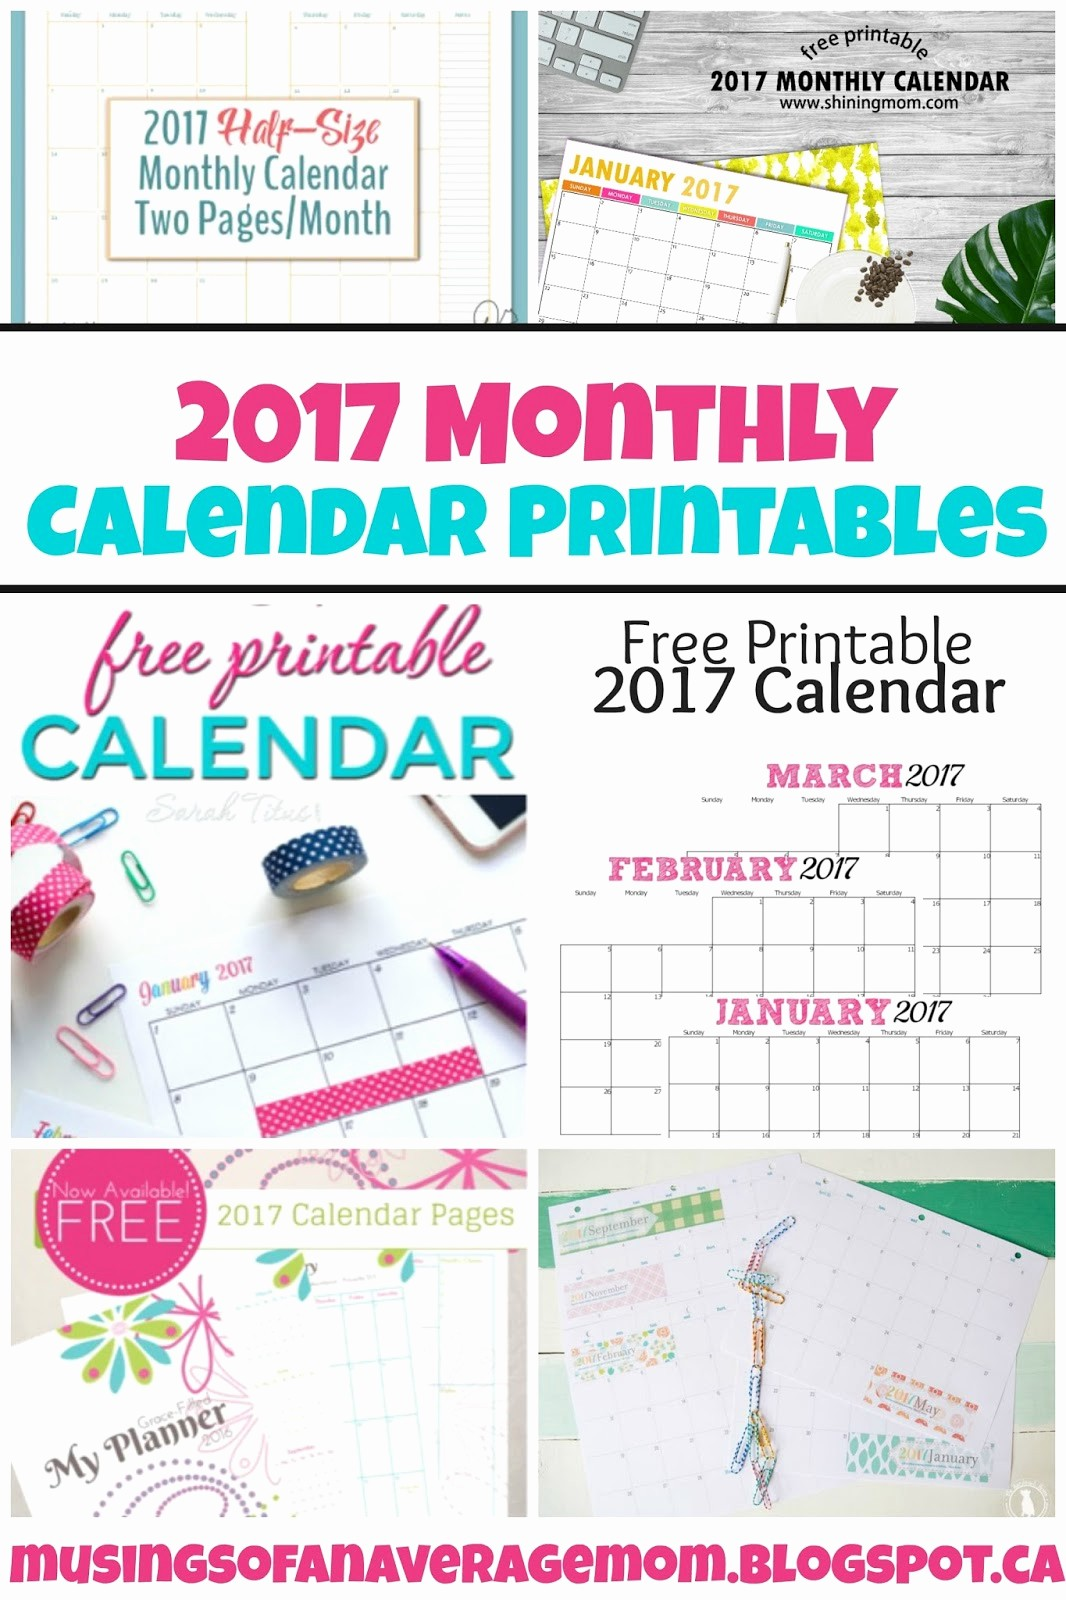 Monthly Calendar 2017 Printable Free Beautiful Musings Of An Average Mom 2017 Monthly Calendars